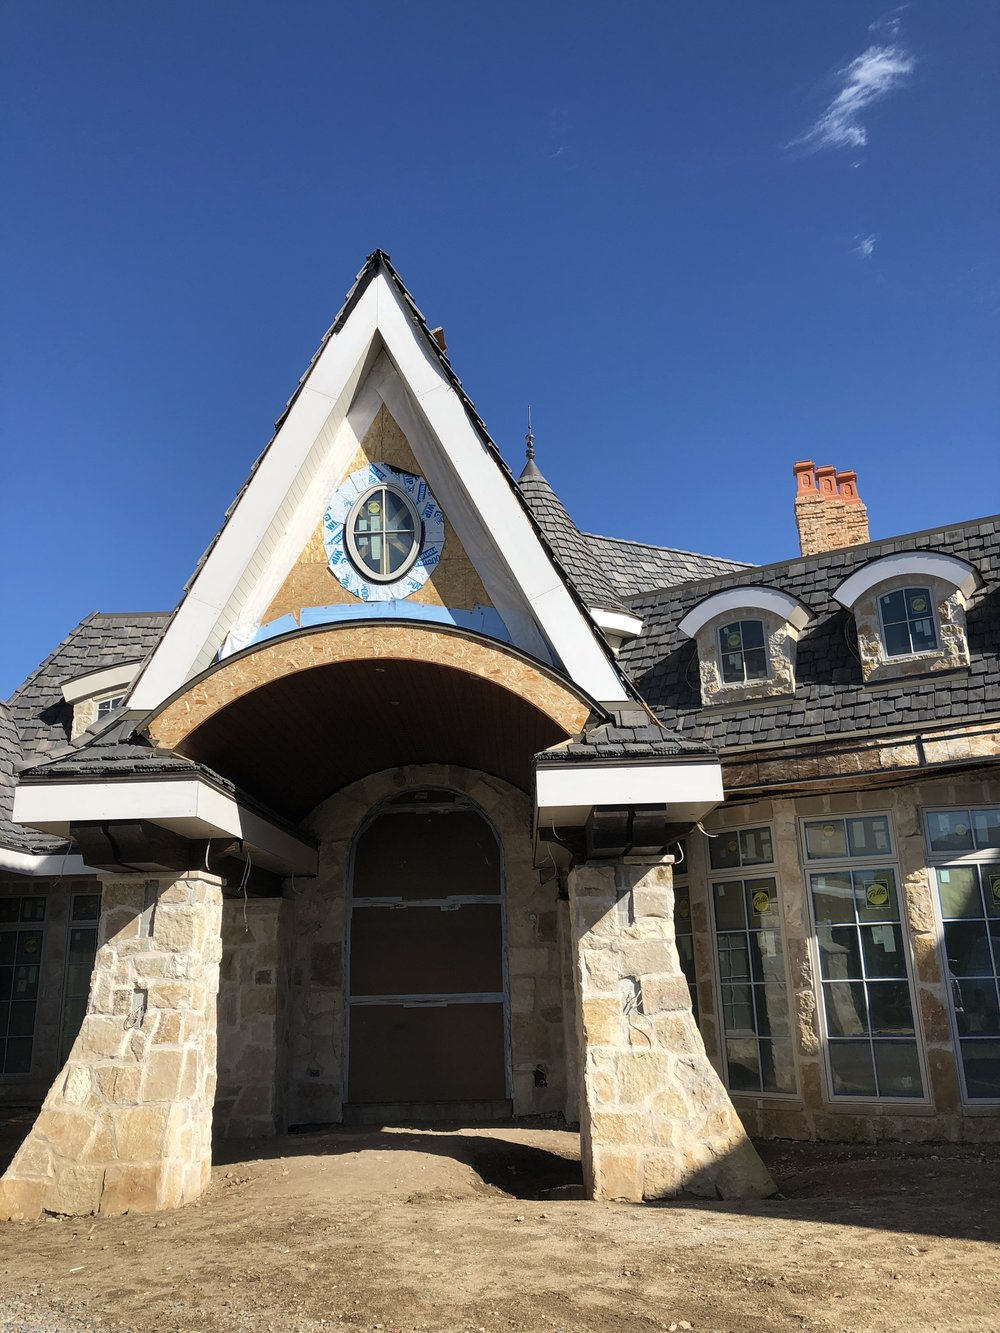 OK, we know this isn't the back of the house, but we just love this picture! The sky is so blue and the craftsmanship on this home is just so amazing.